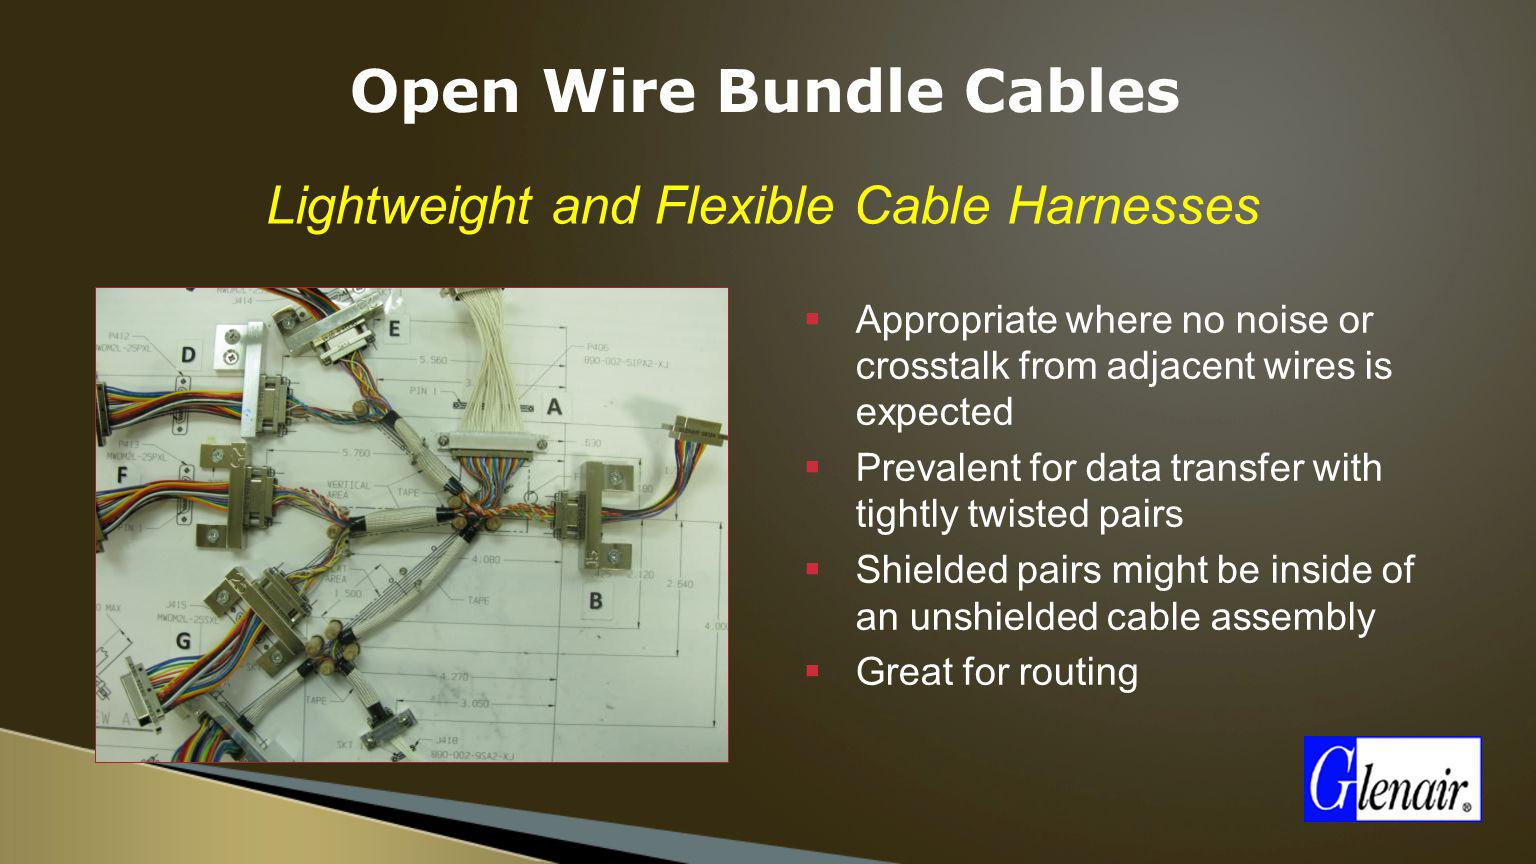 Open Wire Bundle Cables